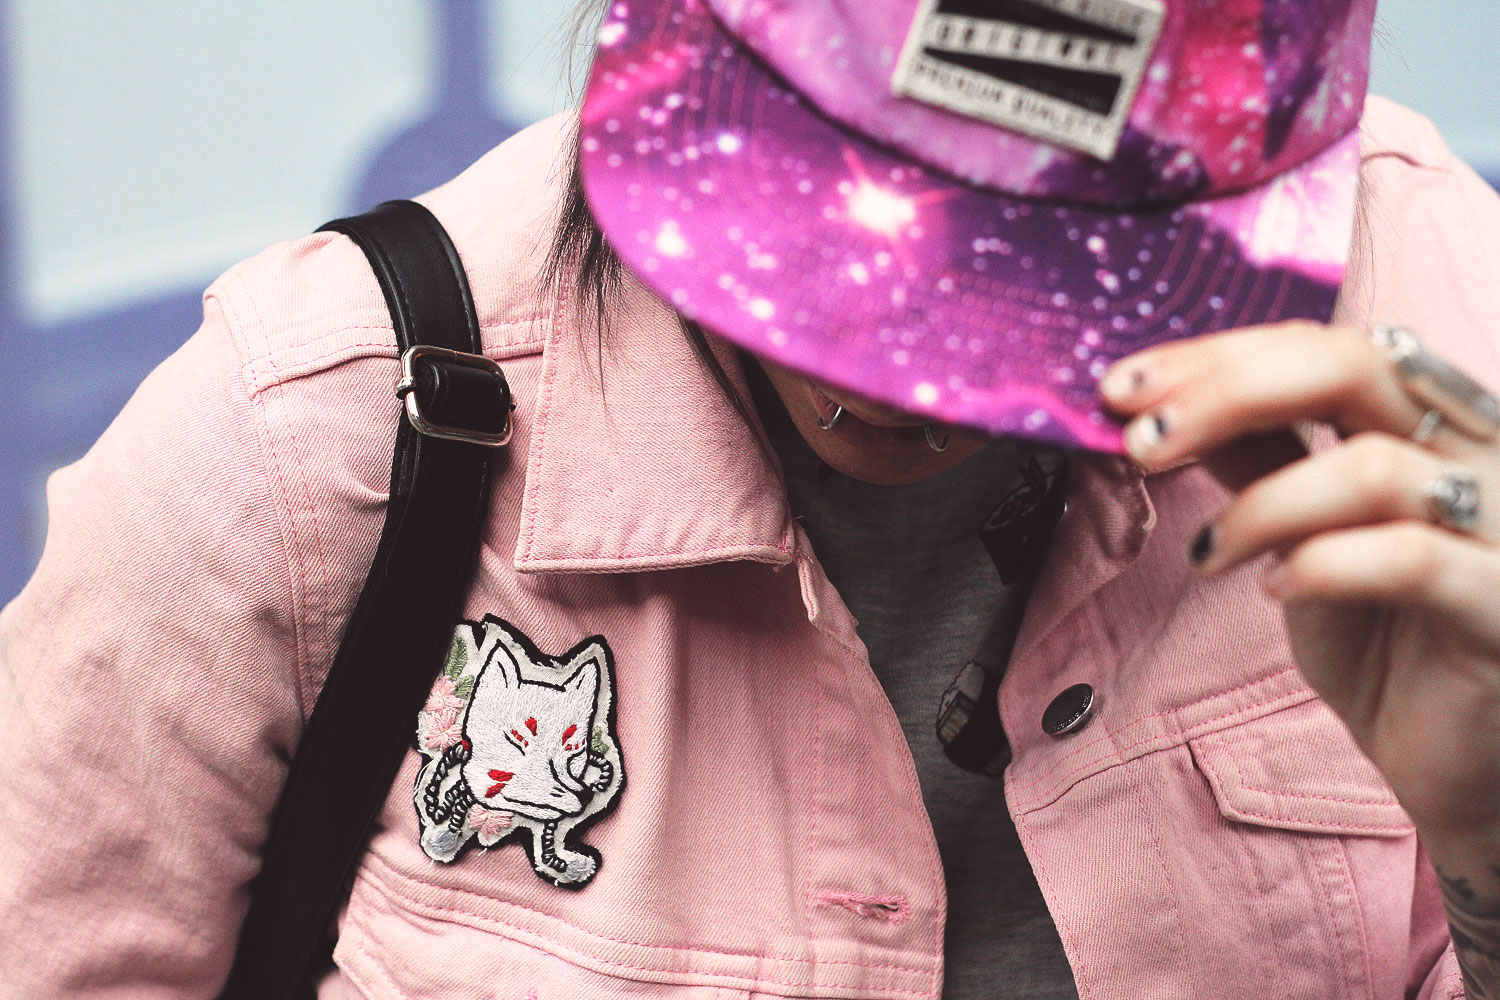 glamour kills, galaxy, cap, holida<, sushi, pink, patches, nekomatahime, kitsune, denim jacket, jeansjacke, leopardenmuster, leoprint, gürtel, jeans, acid wash, creepers, katzenrucksatz, catbag, alternative, alternative fashion, alternative girl, alternative mode, altgirl, berlin, berlin fashion, berlin fashion blogger, berlin mode, berlin streetstyle, blogger, fashion blogger, girls with piercings, girls with tattoos, grunge, grunge fashion, grunge mode, mode, Punk, punk fashion, punk mode, punkgirl, punkmädchen, scenehair, snakebites, split hair, splithair, tattoomädchen, tattoomodel